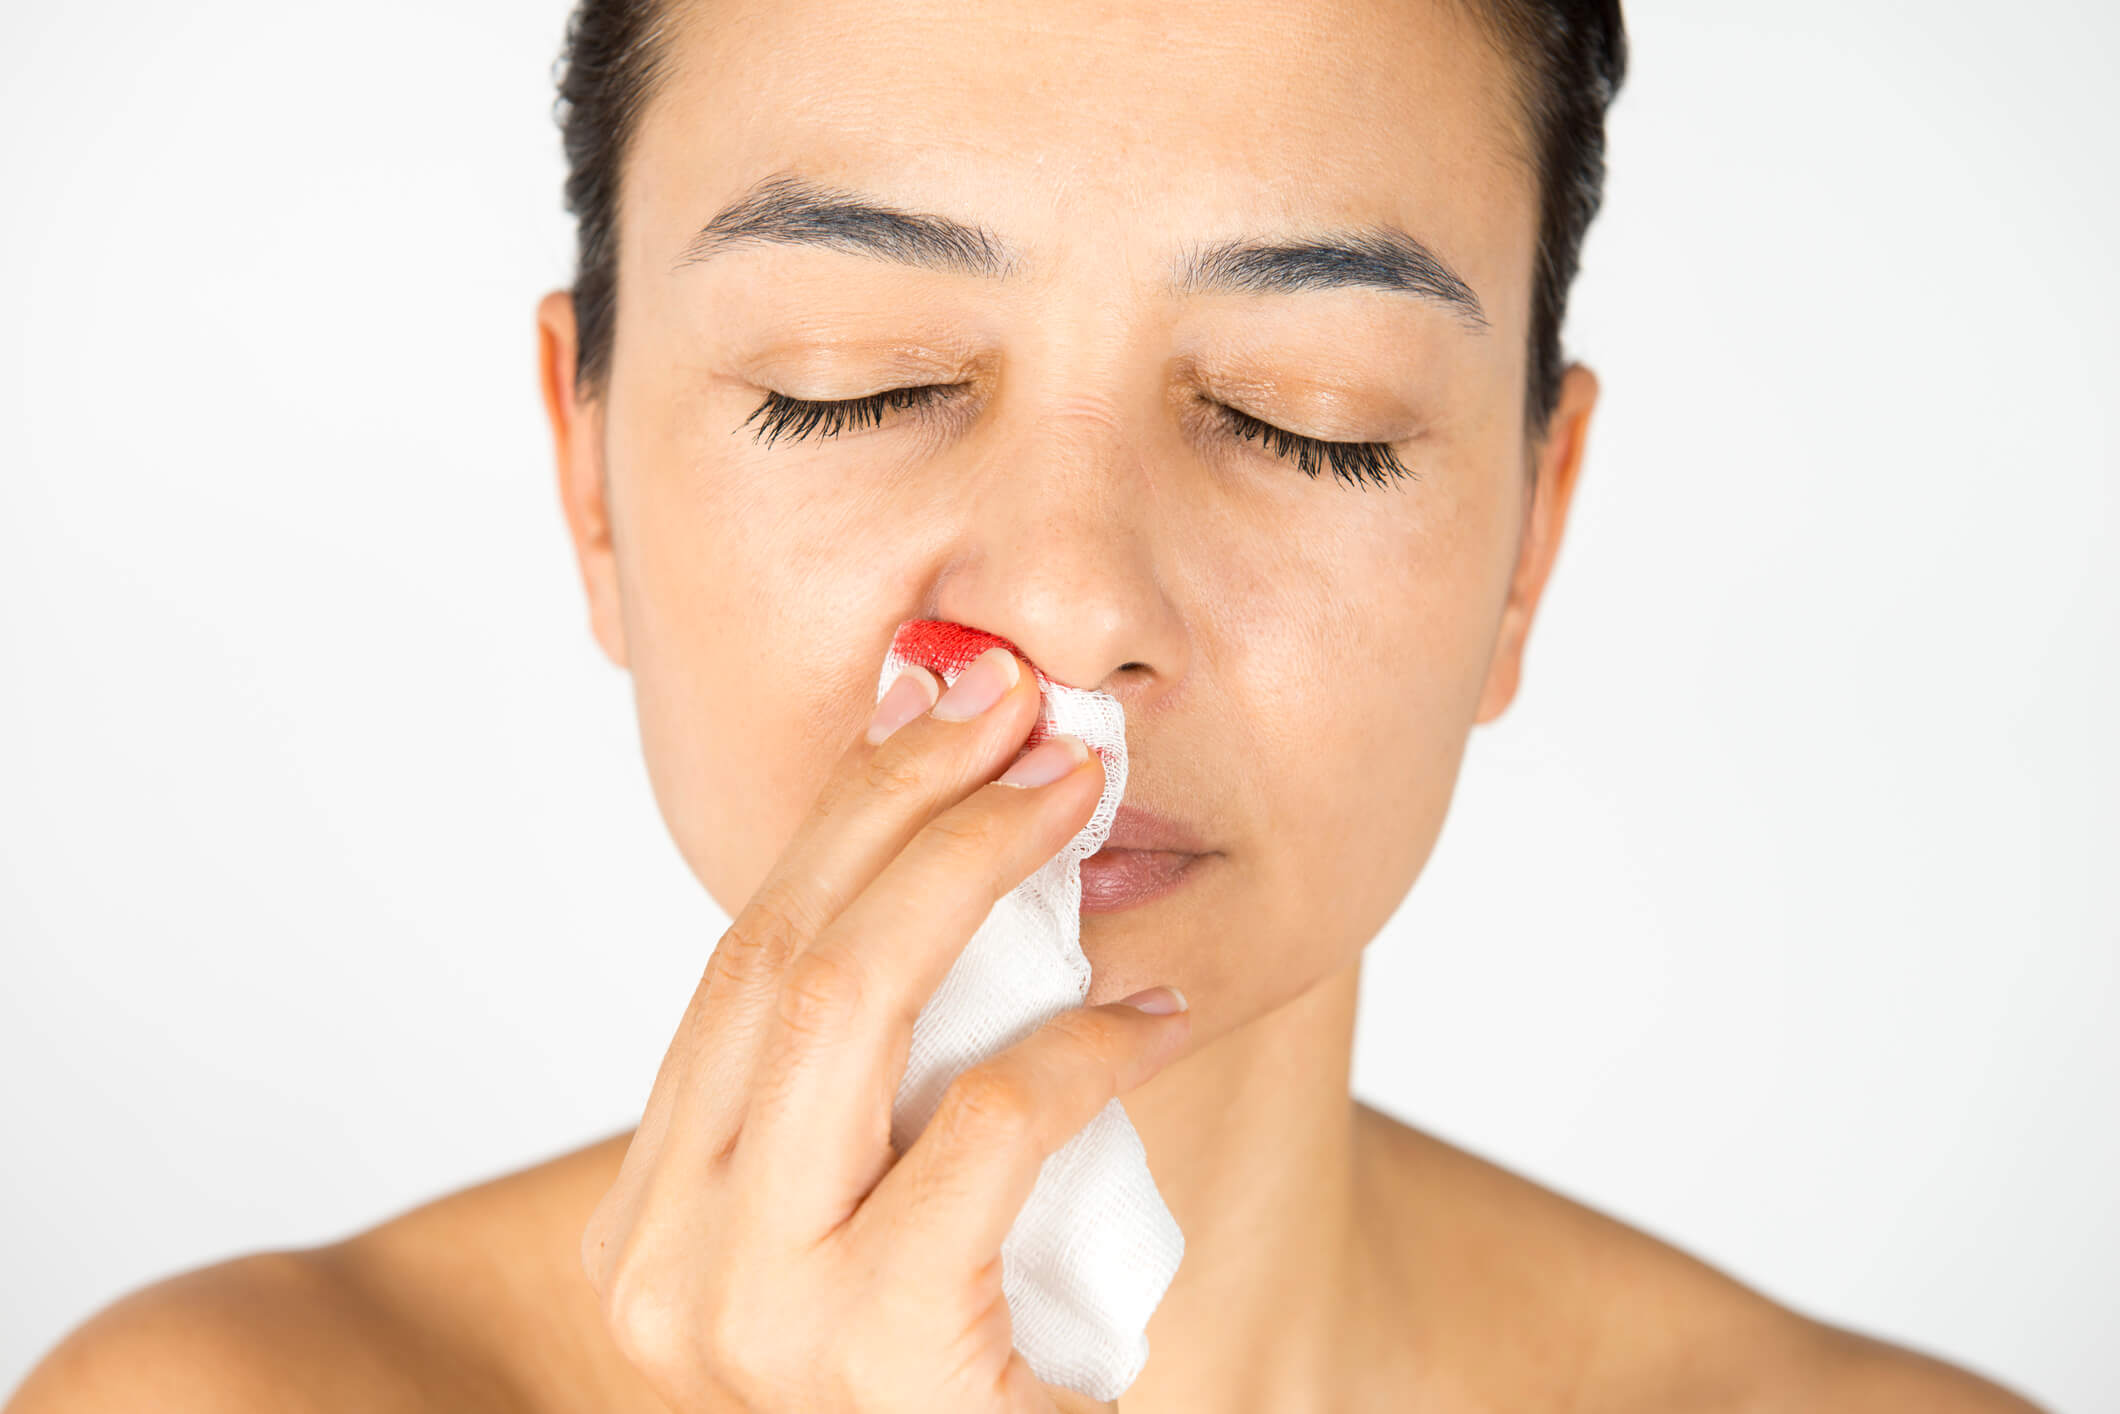 What You Need To Know About Nosebleeds